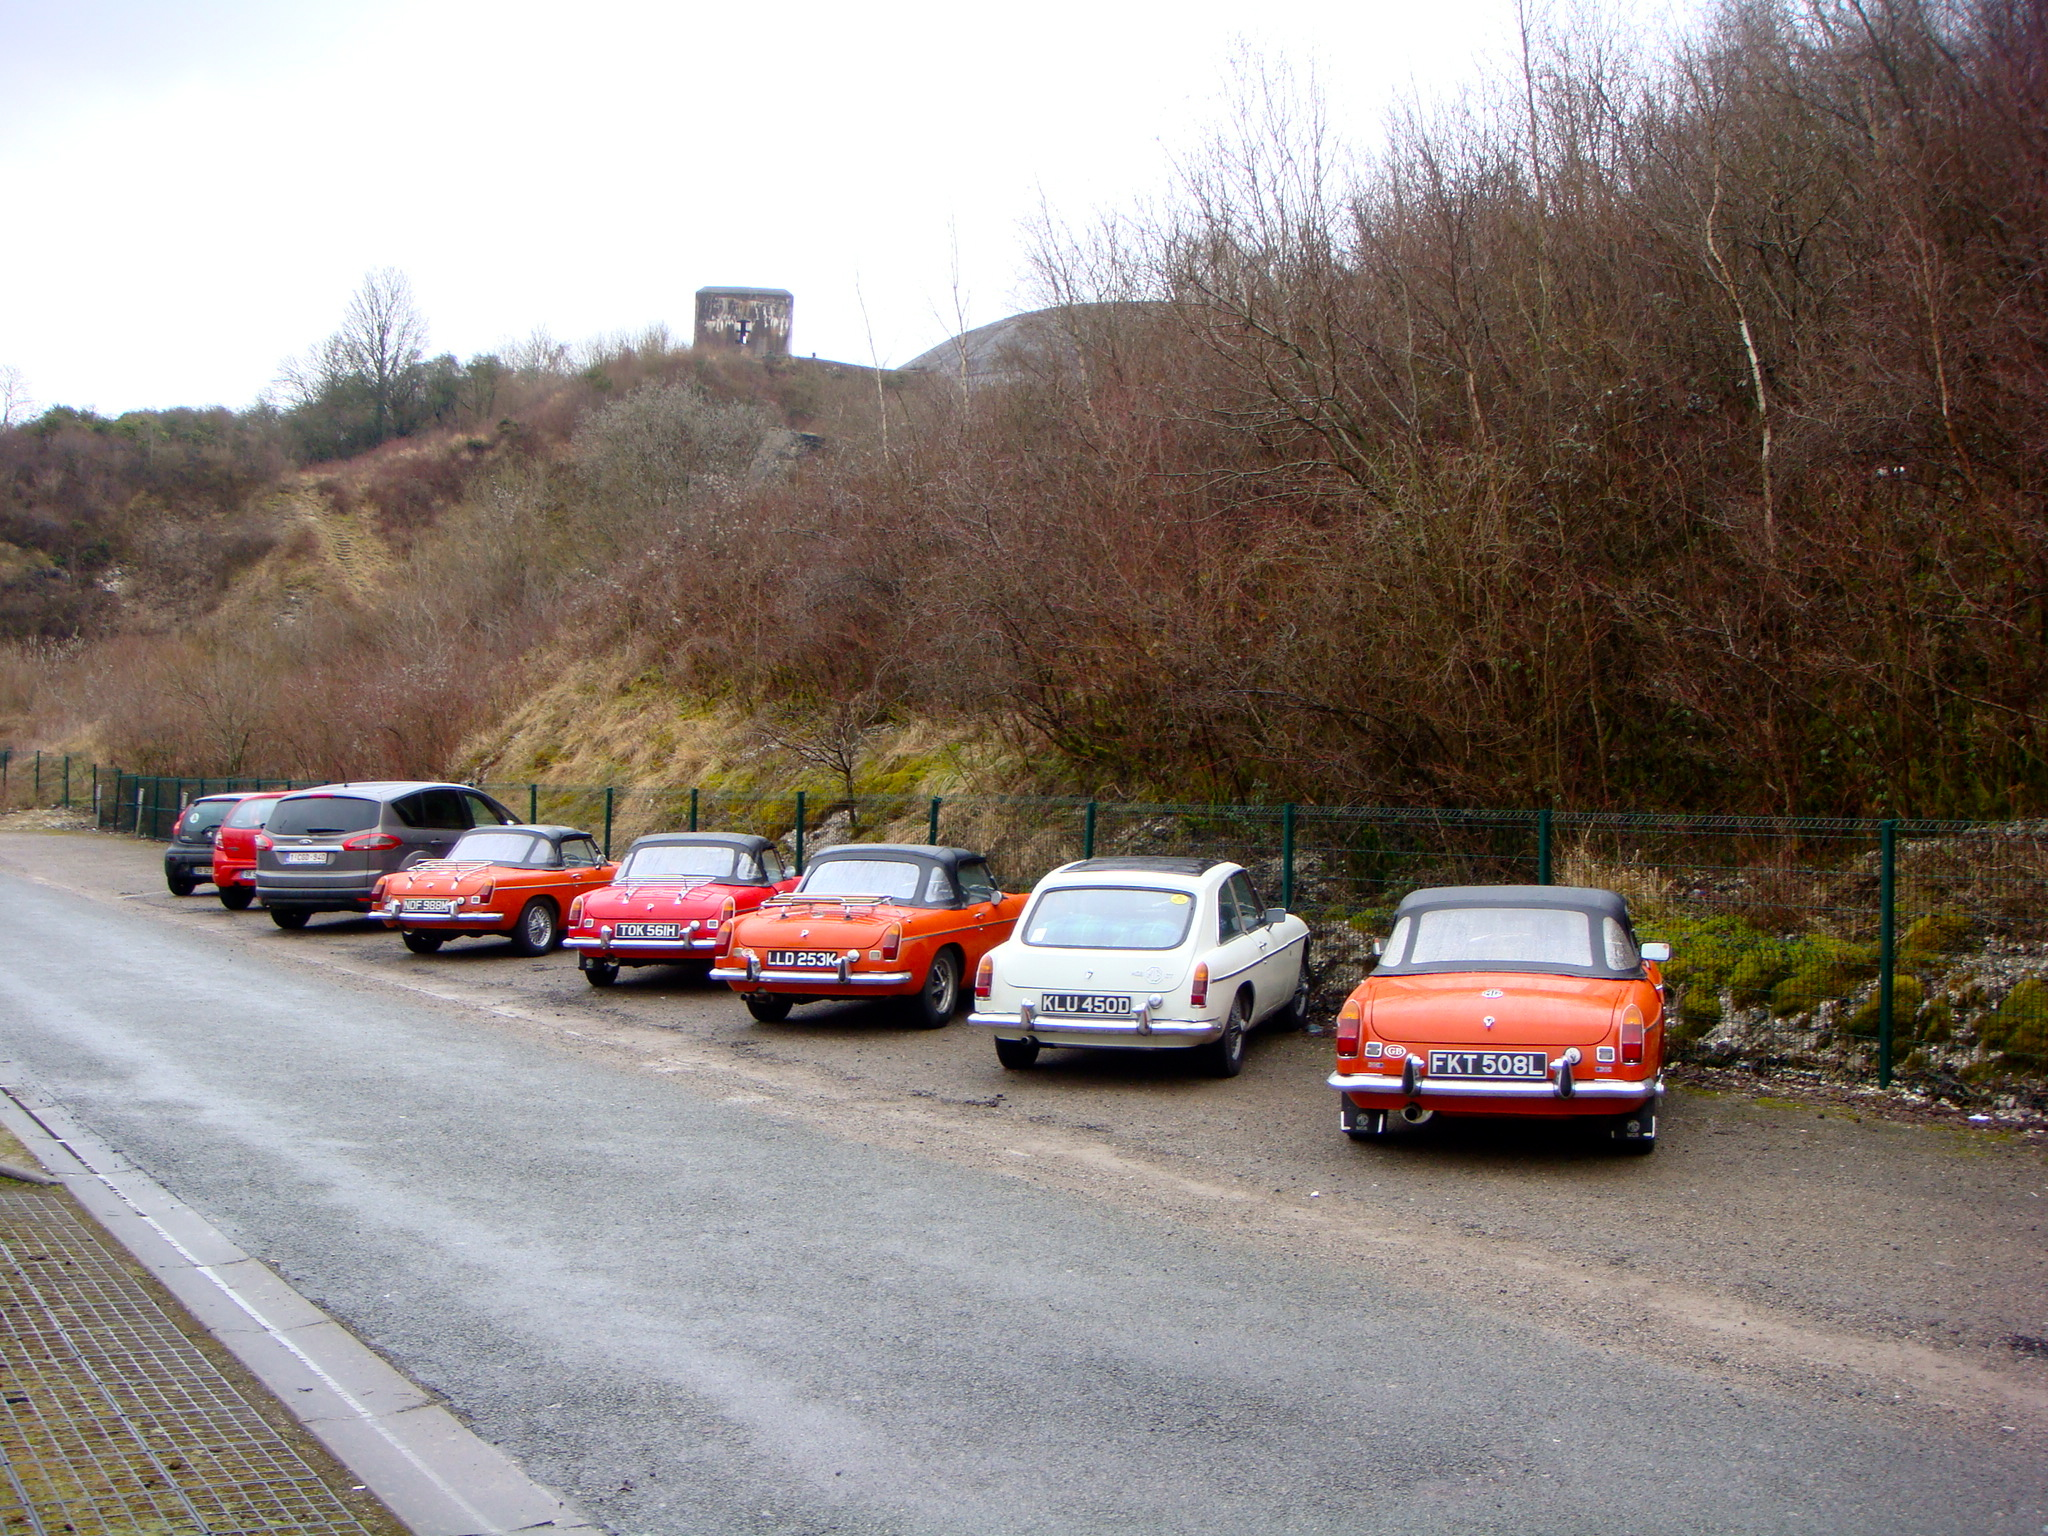 MG's parked up